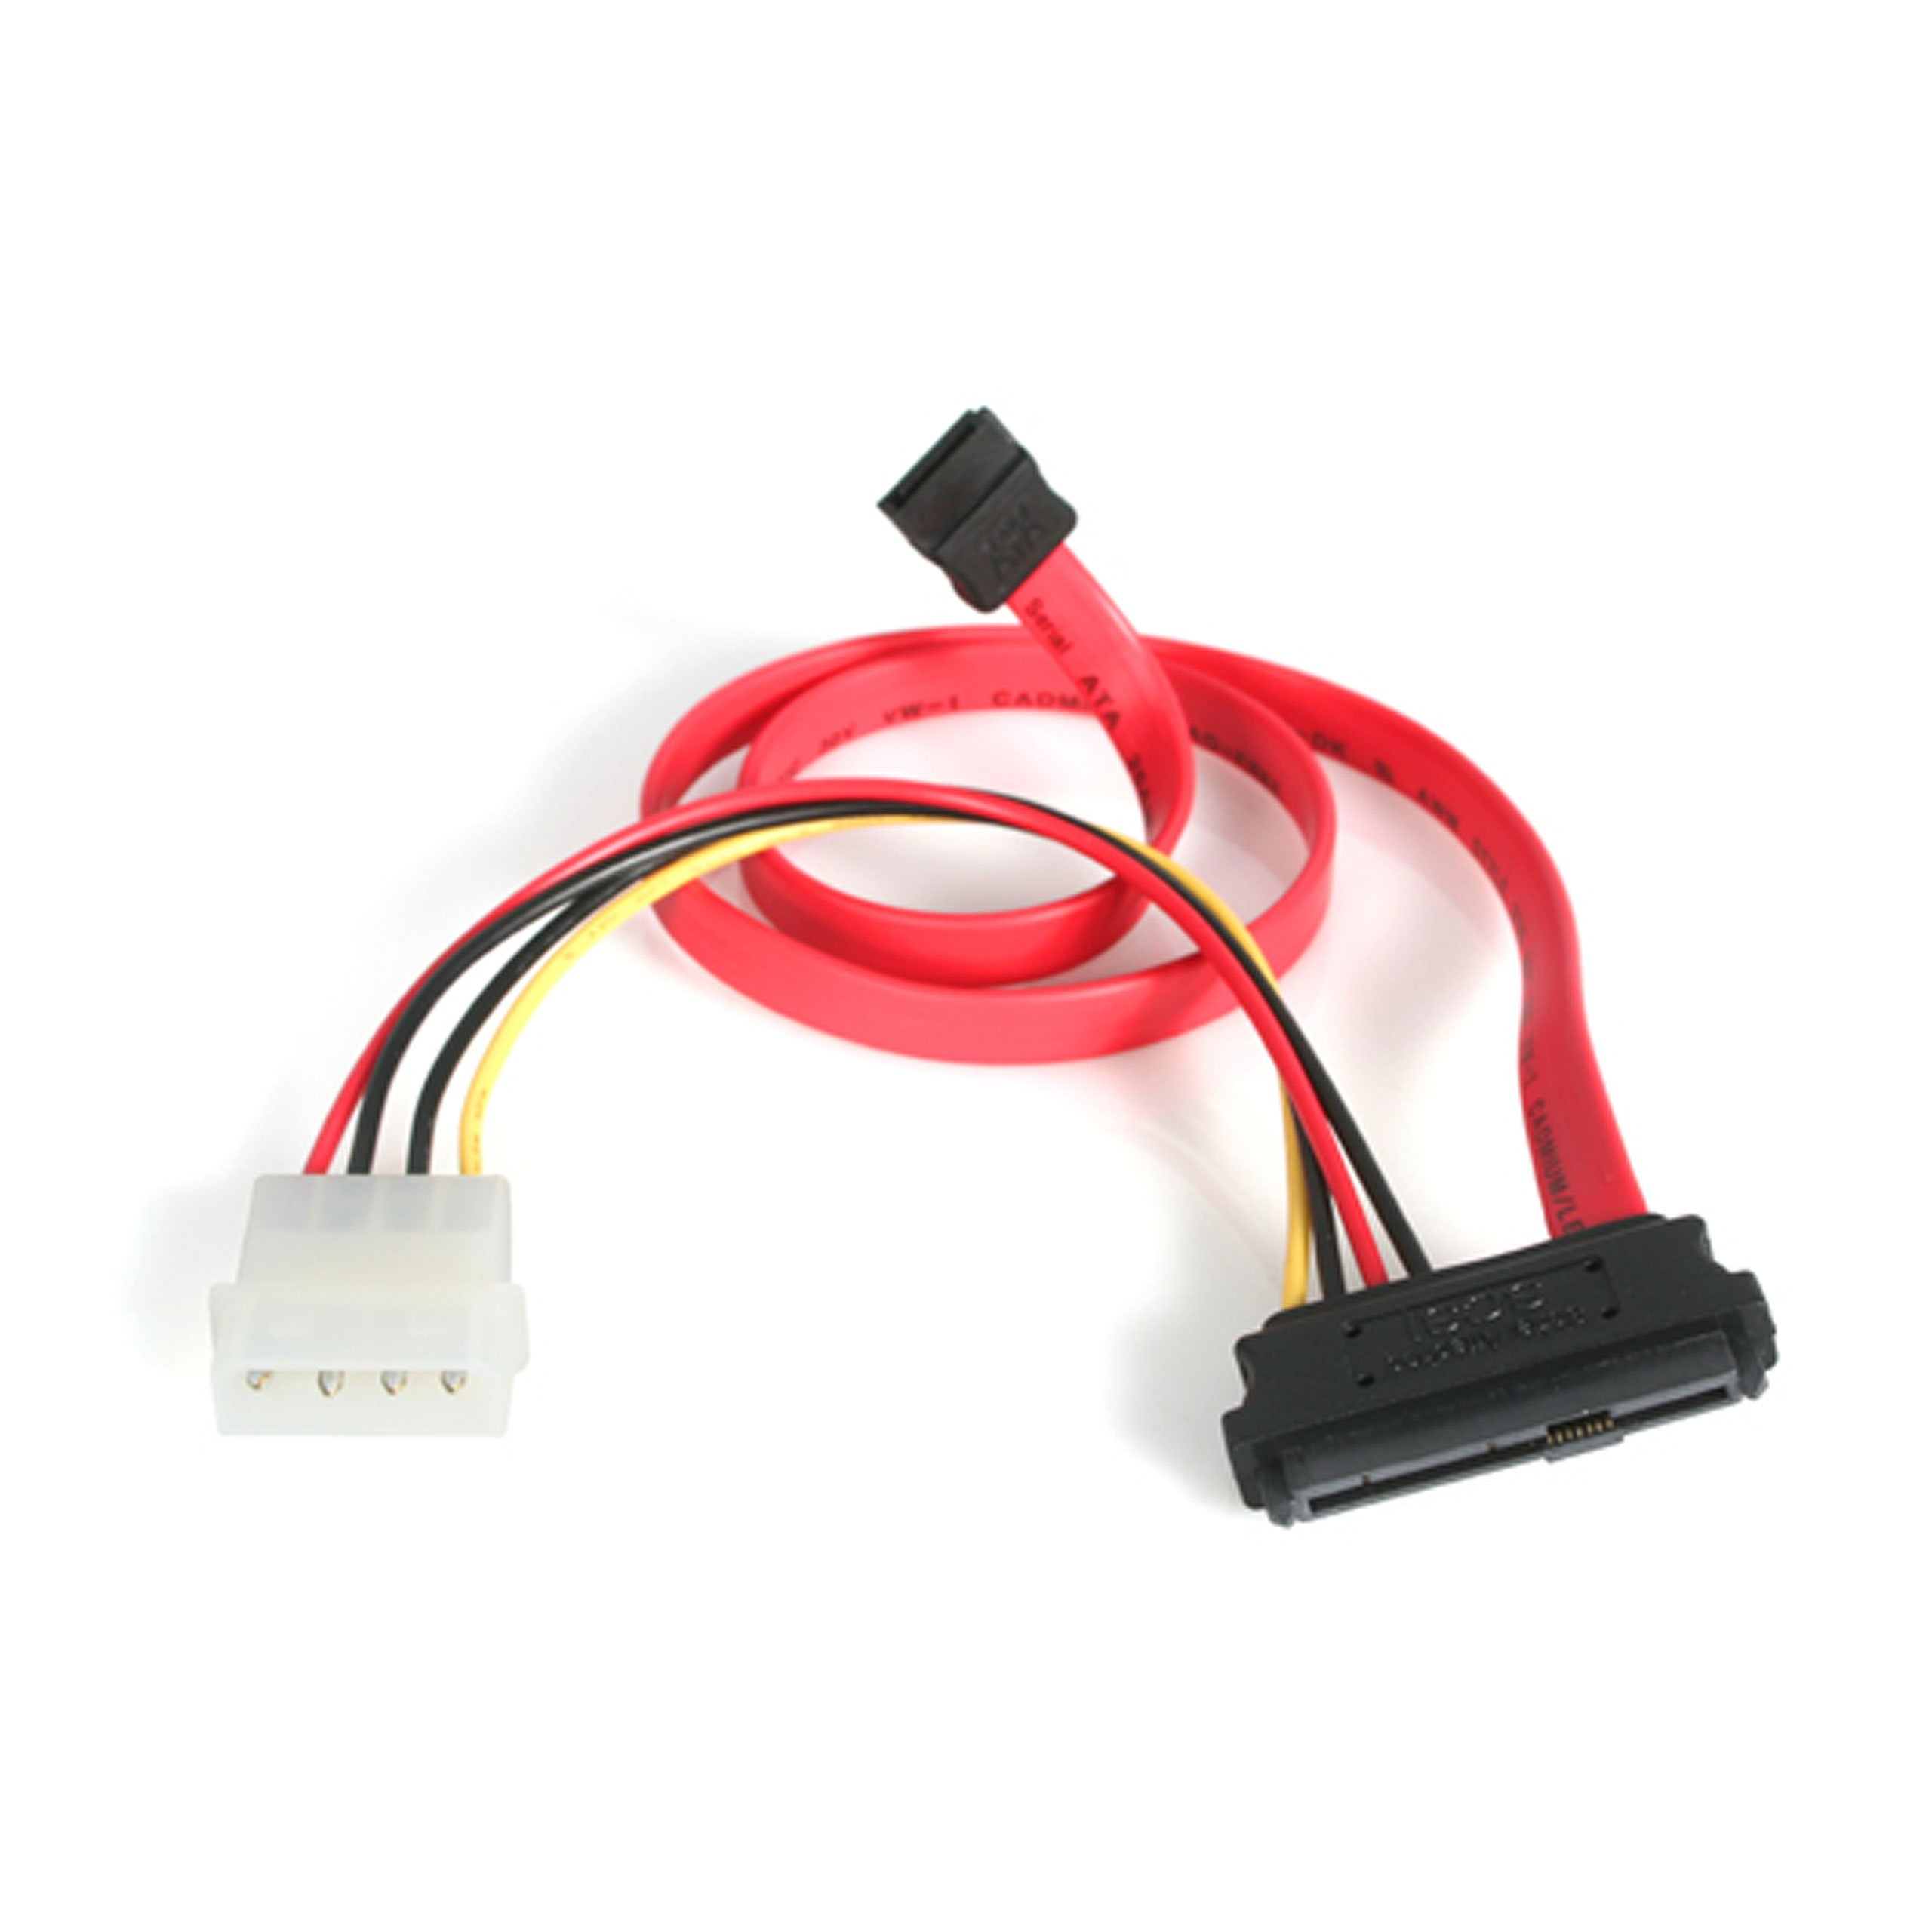 StarTech 18-Inch SAS 29 Pin to SATA Cable with LP4 Power (SAS729PW18) by StarTech (Image #1)